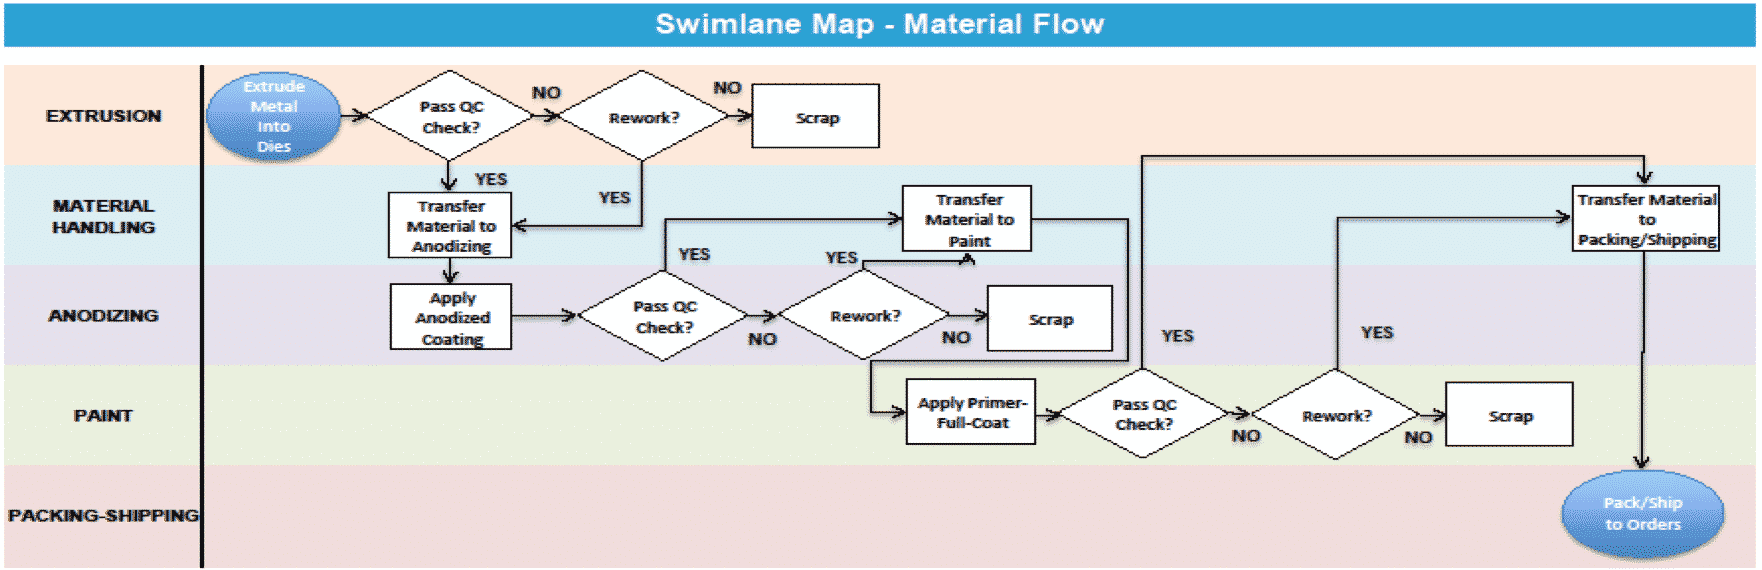 Swimlane Map - Material Flow